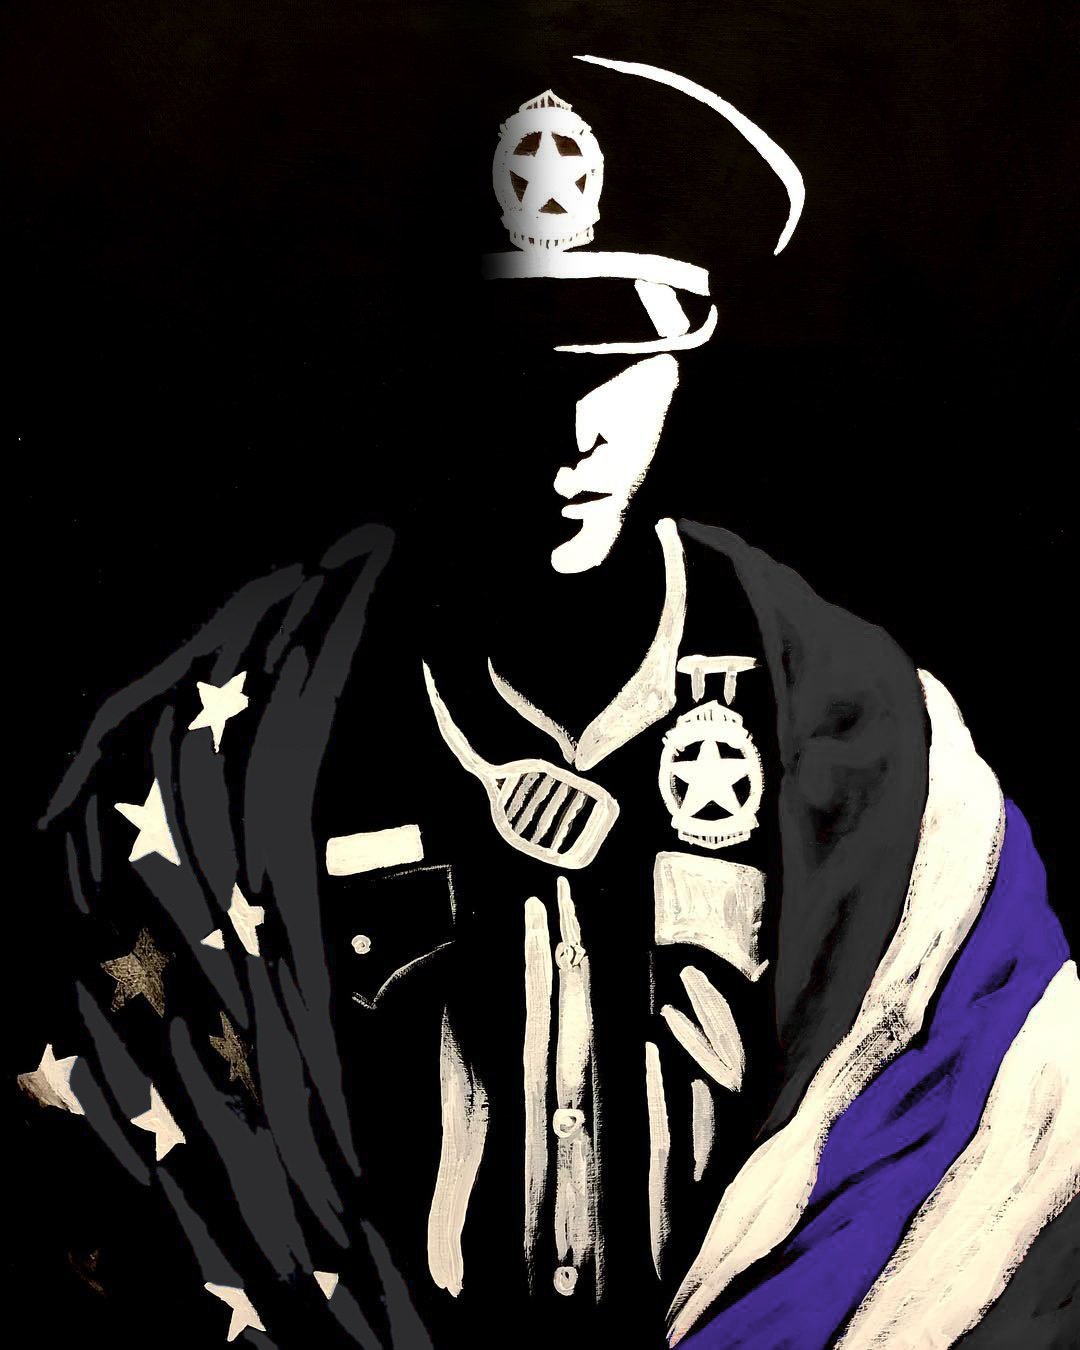 Dallas-blue+line+end+of+watch+police+painting.jpg